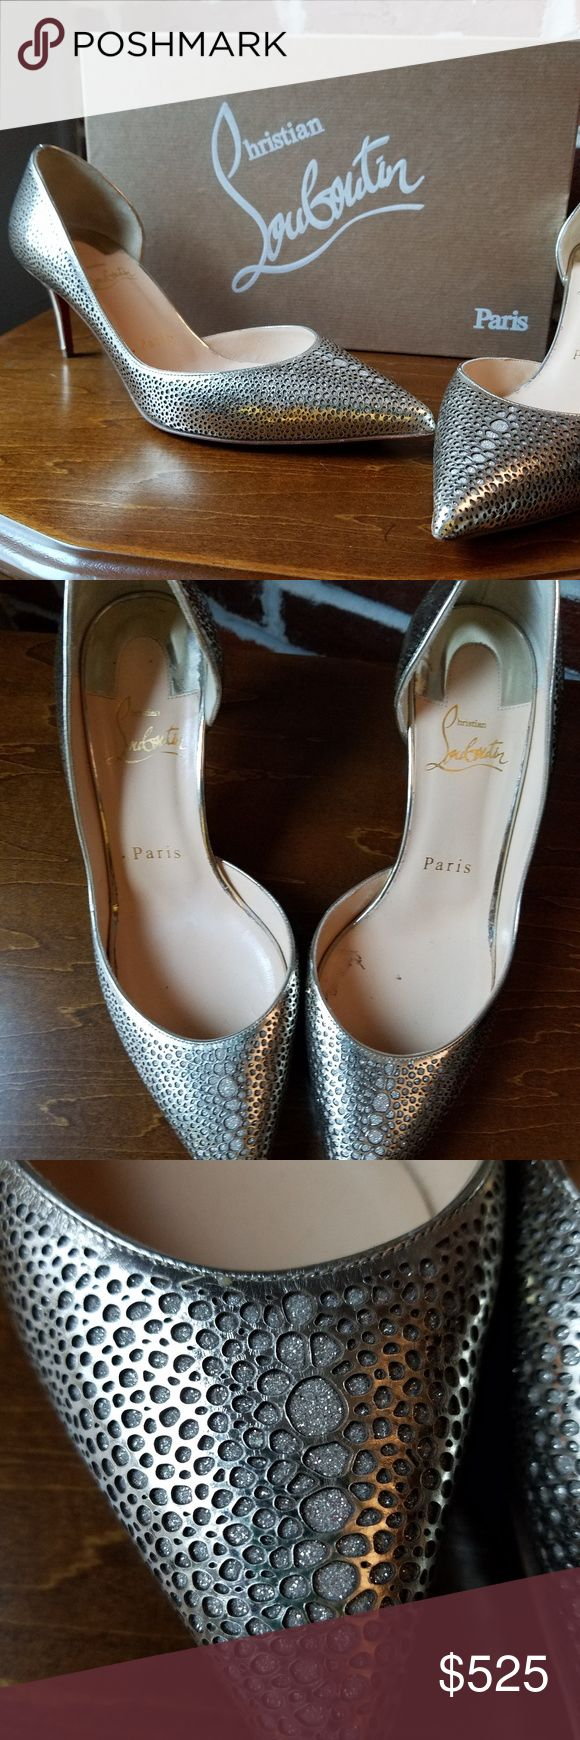 Authentic Christian Louboutin 70 pumps, size 36 Authentic Christian Louboutin Galupump Laser-Cut Patent Leather 70mm heel, size 36. Comes with original box, 2 shoe pouches, and replacement heel taps. Like new.  Worn only once on carpet so red bottoms are like new! Christian Louboutin Shoes Heels